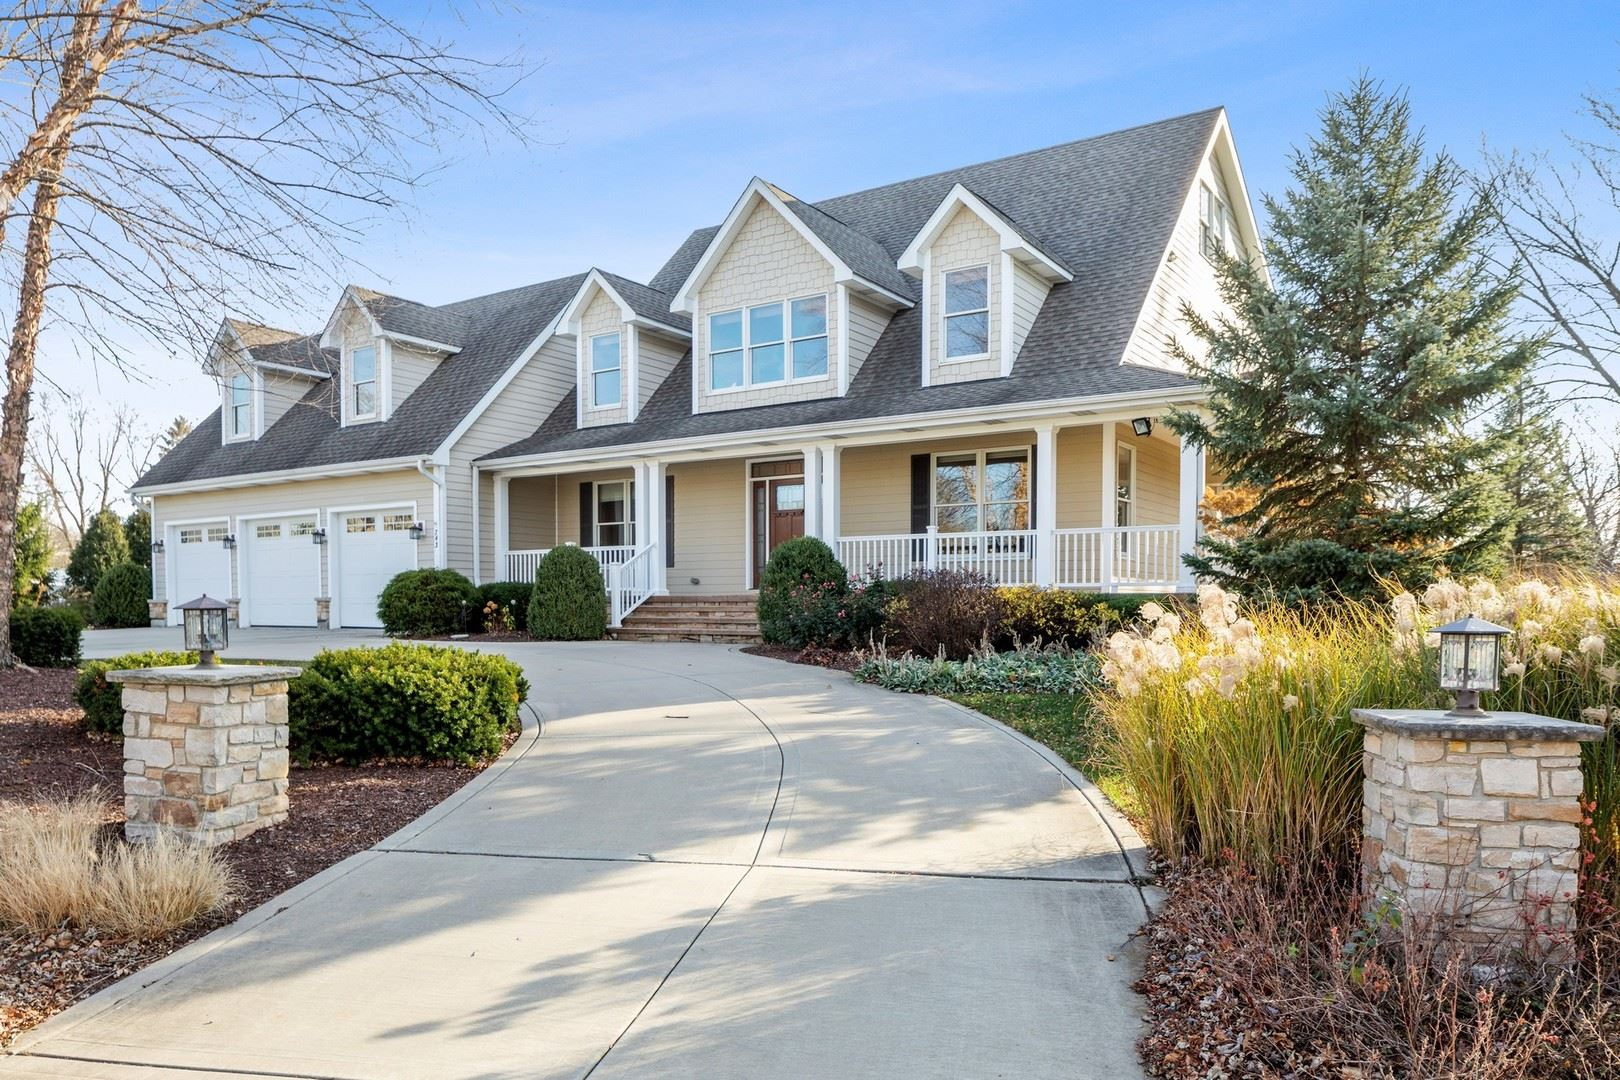 743 67th Place, Willowbrook, IL 60527 - #: 10942233